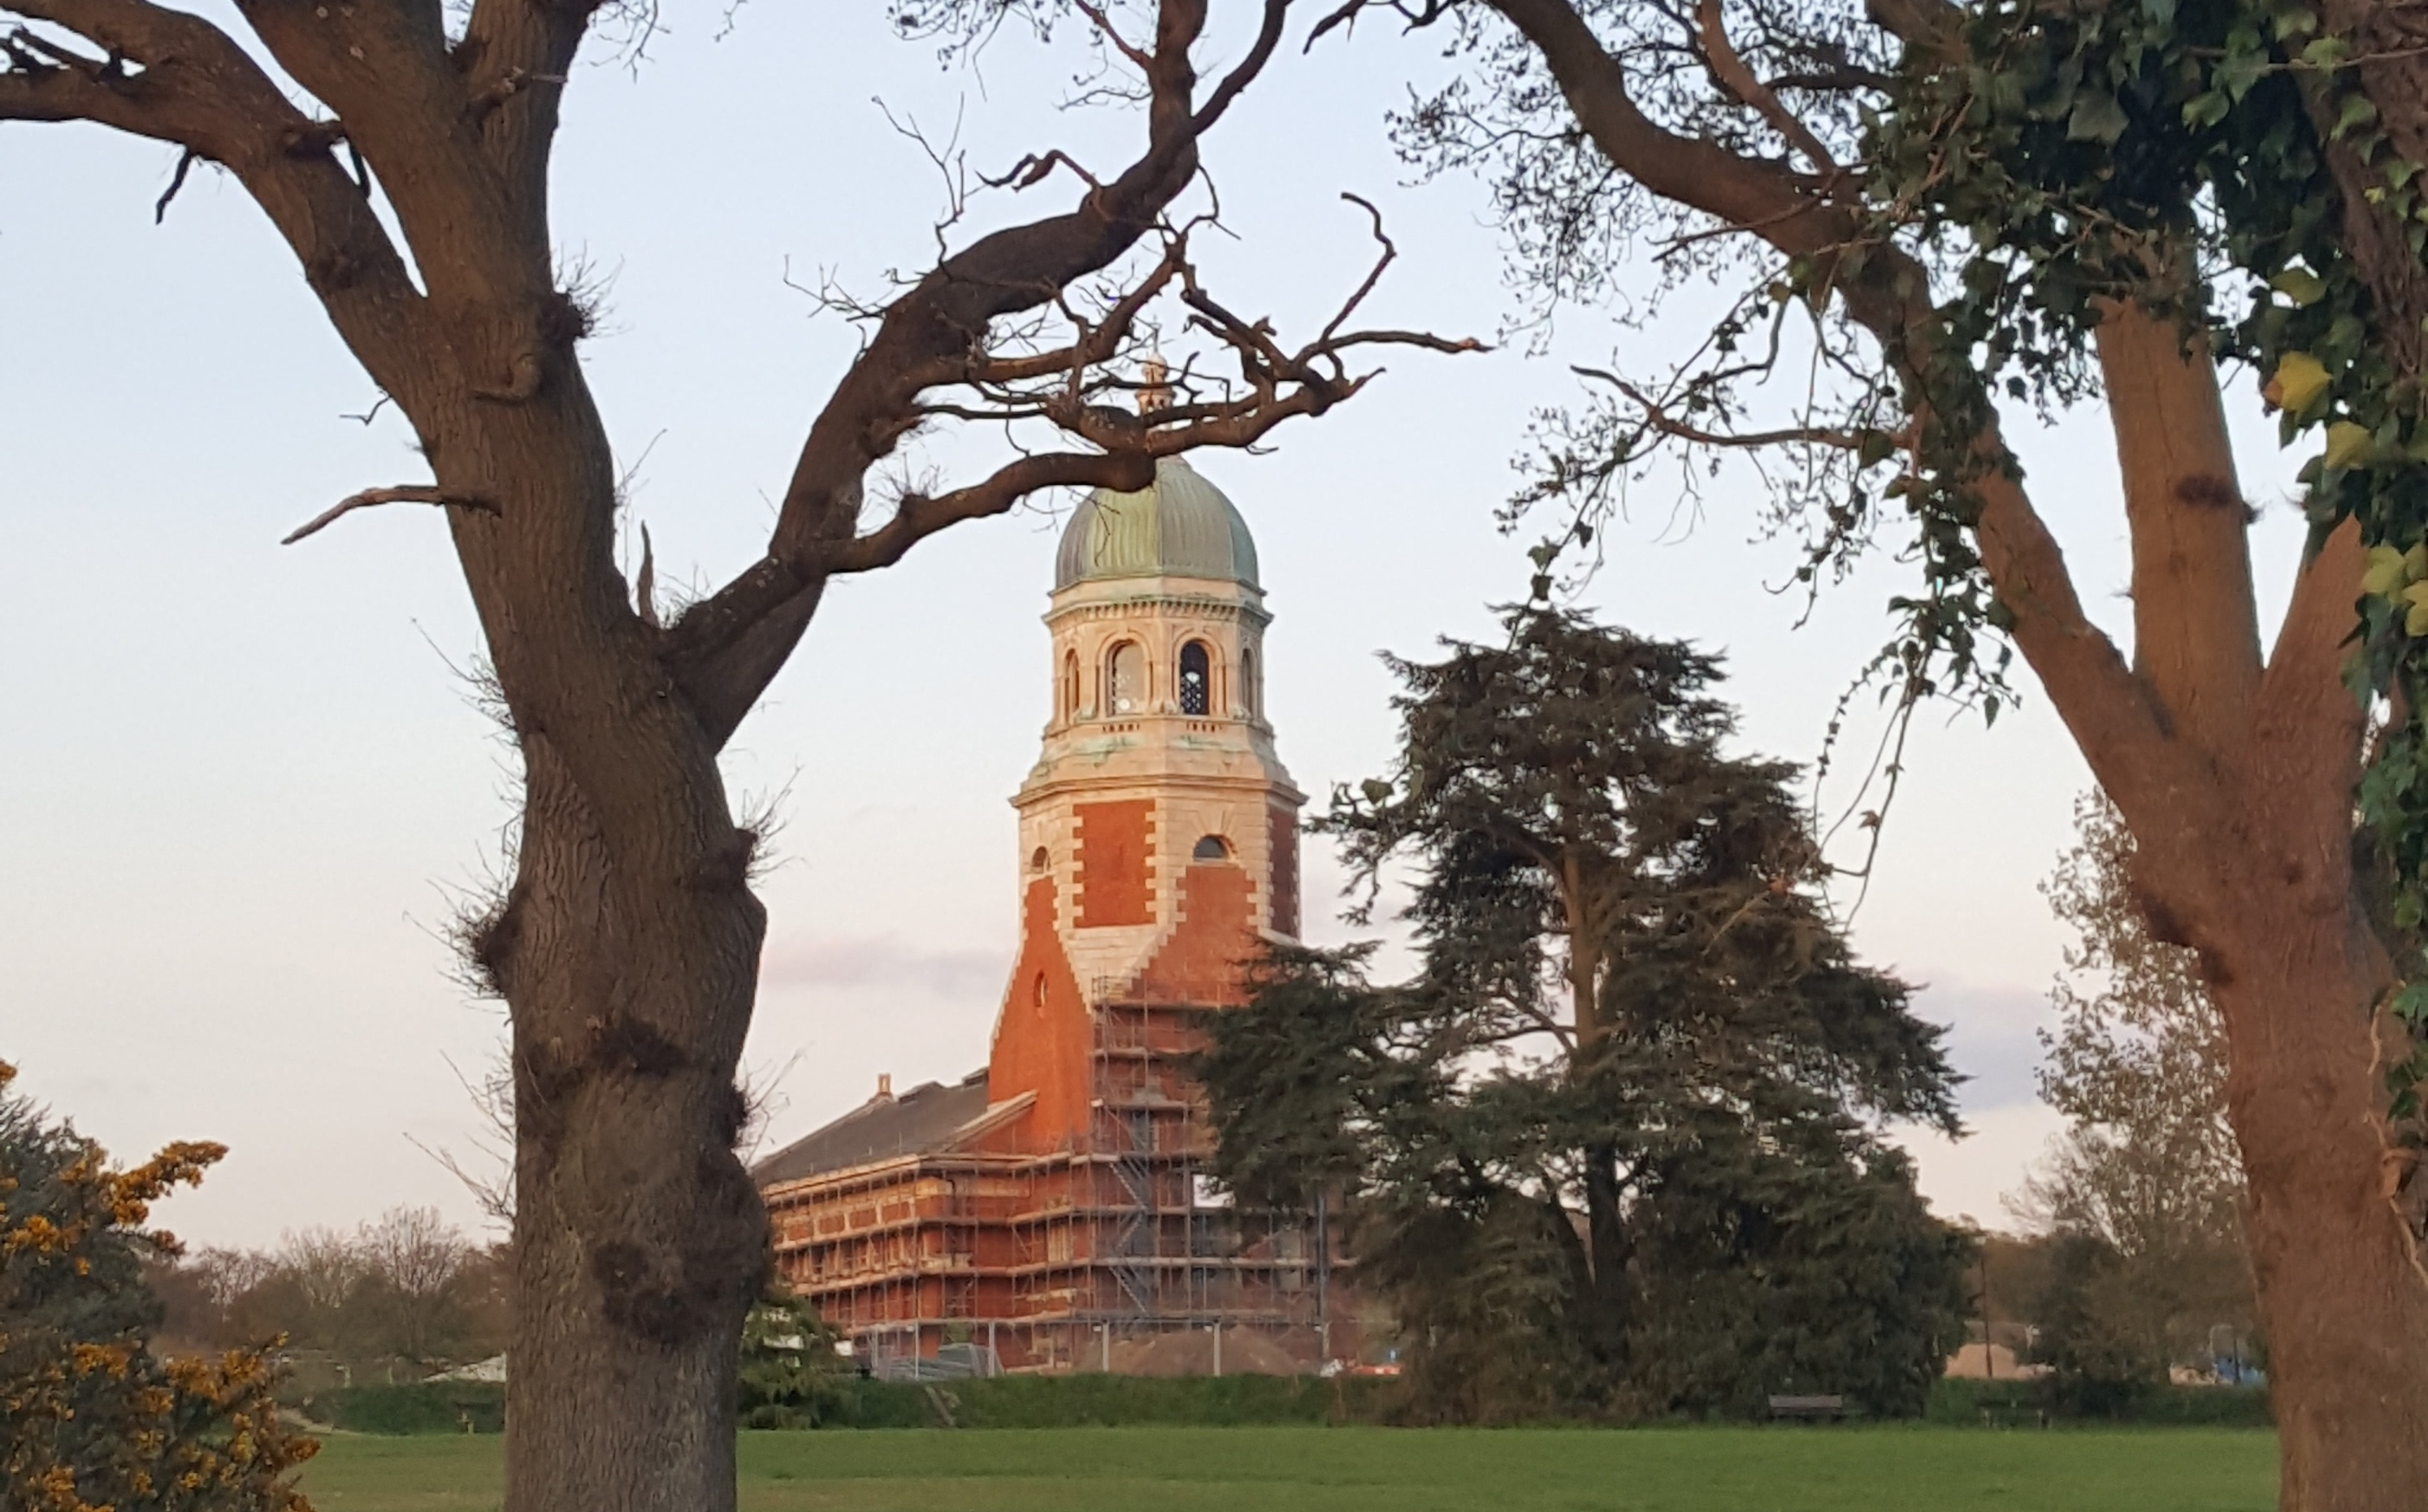 Netley Abbey, a grand Victorian style building set in a large park with mature trees